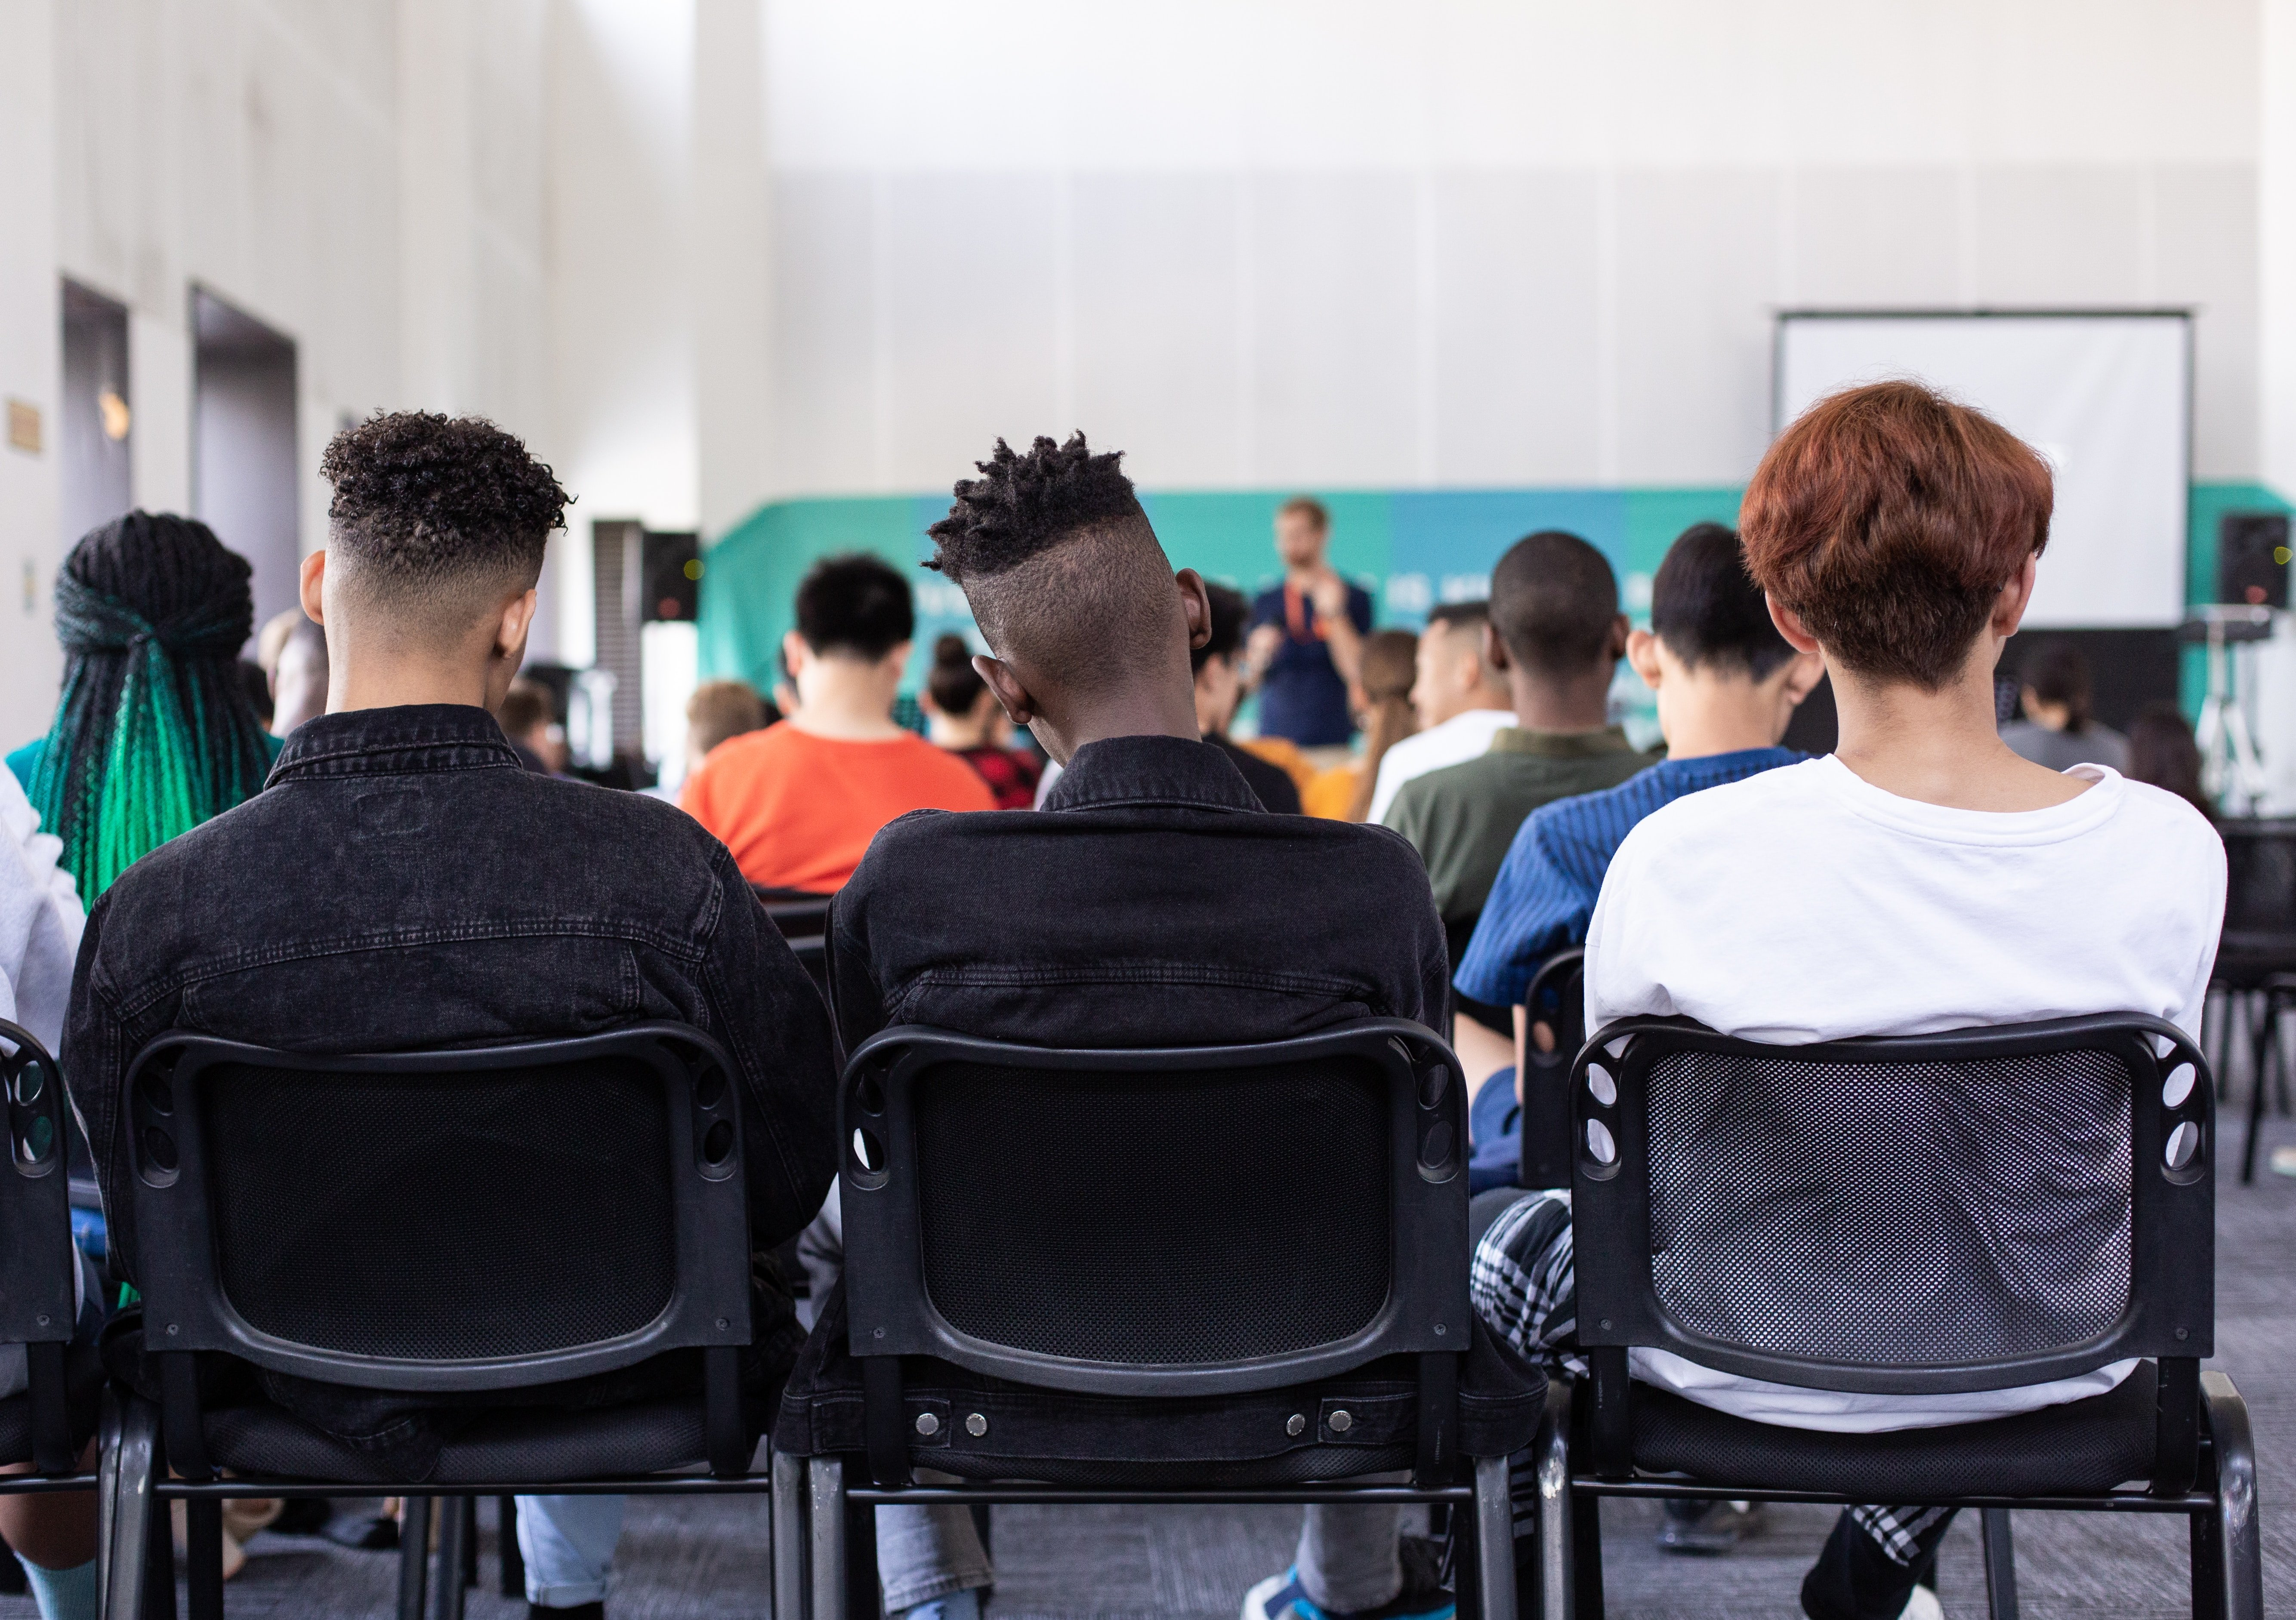 people sitting in chairs in a classroom viewed from behind